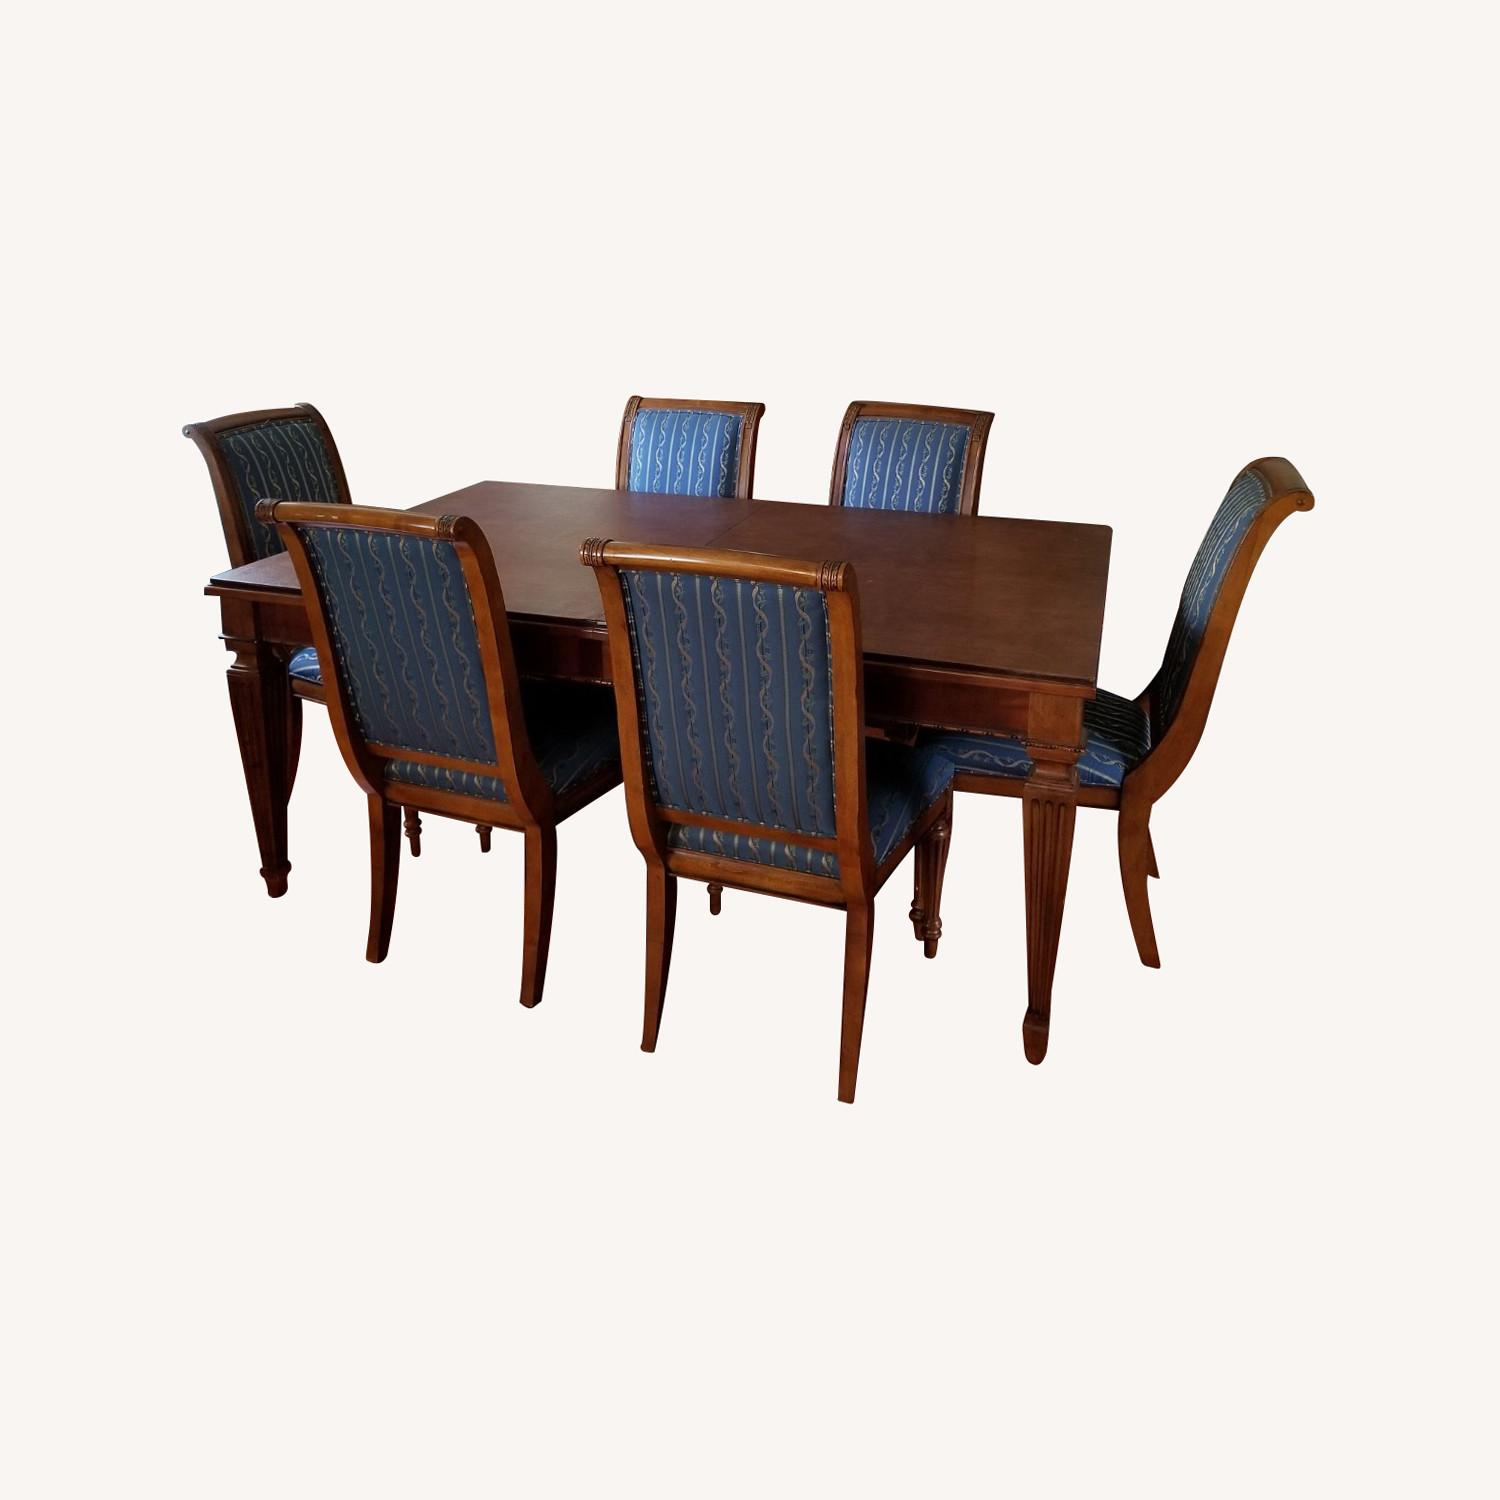 Ethan Allen Dinning Room Set w/8 chairs - image-0